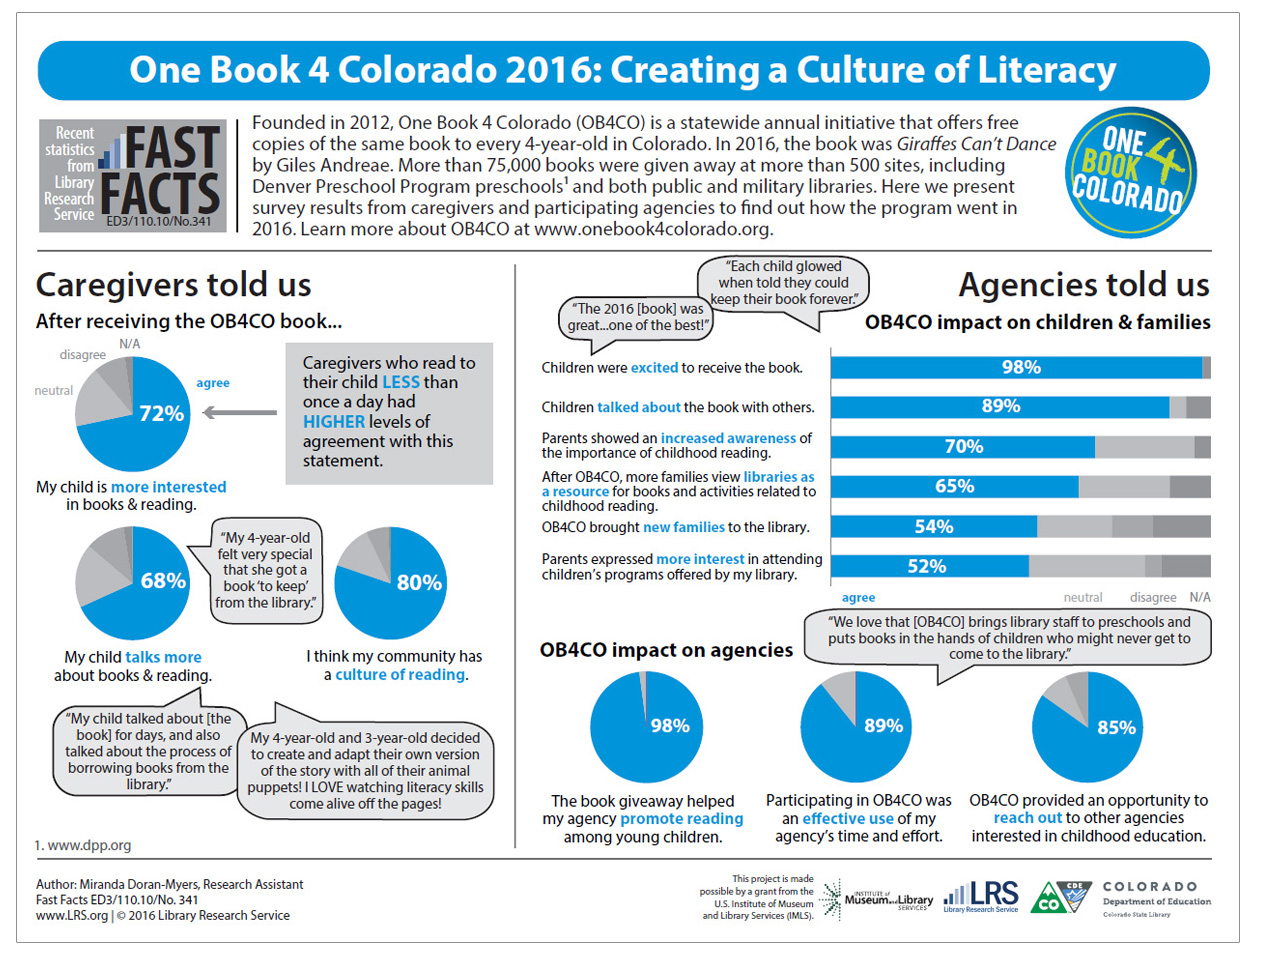 One Book 4 Colorado 2016: Creating a Culture of Literacy